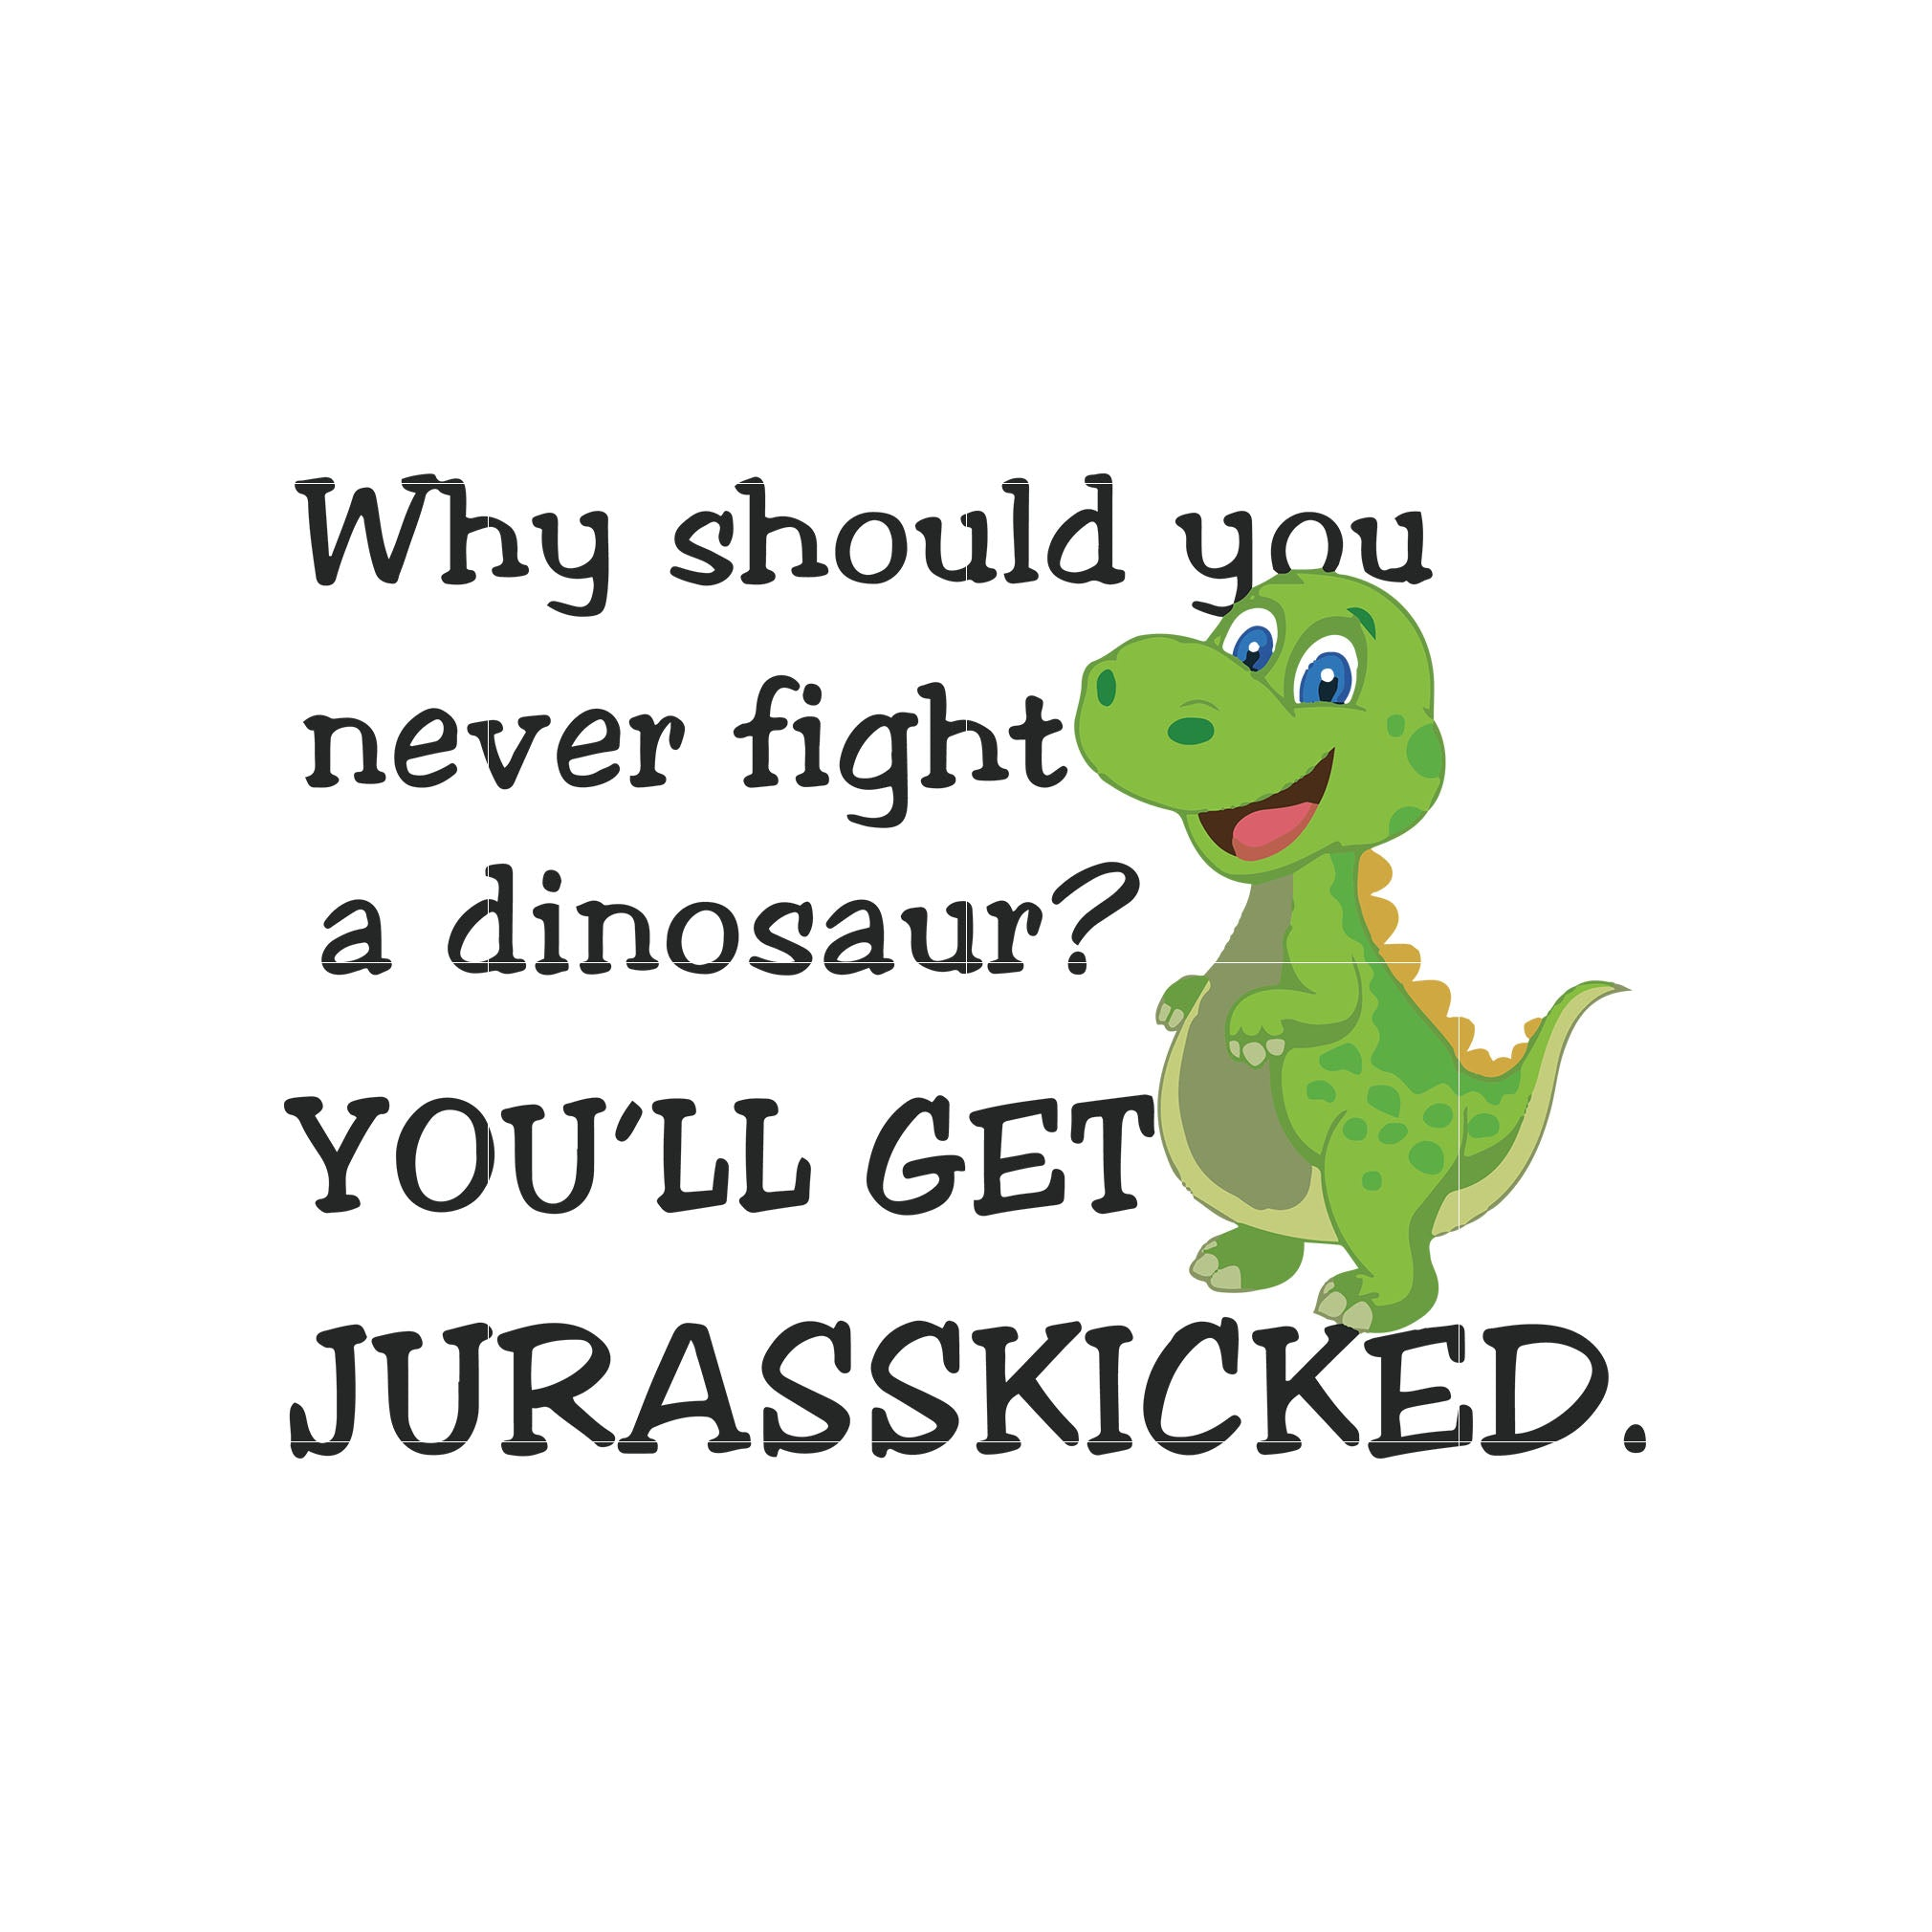 Why should you never fight a dinosaur you'll get jurasskicked svg,dxf,eps,png digital file